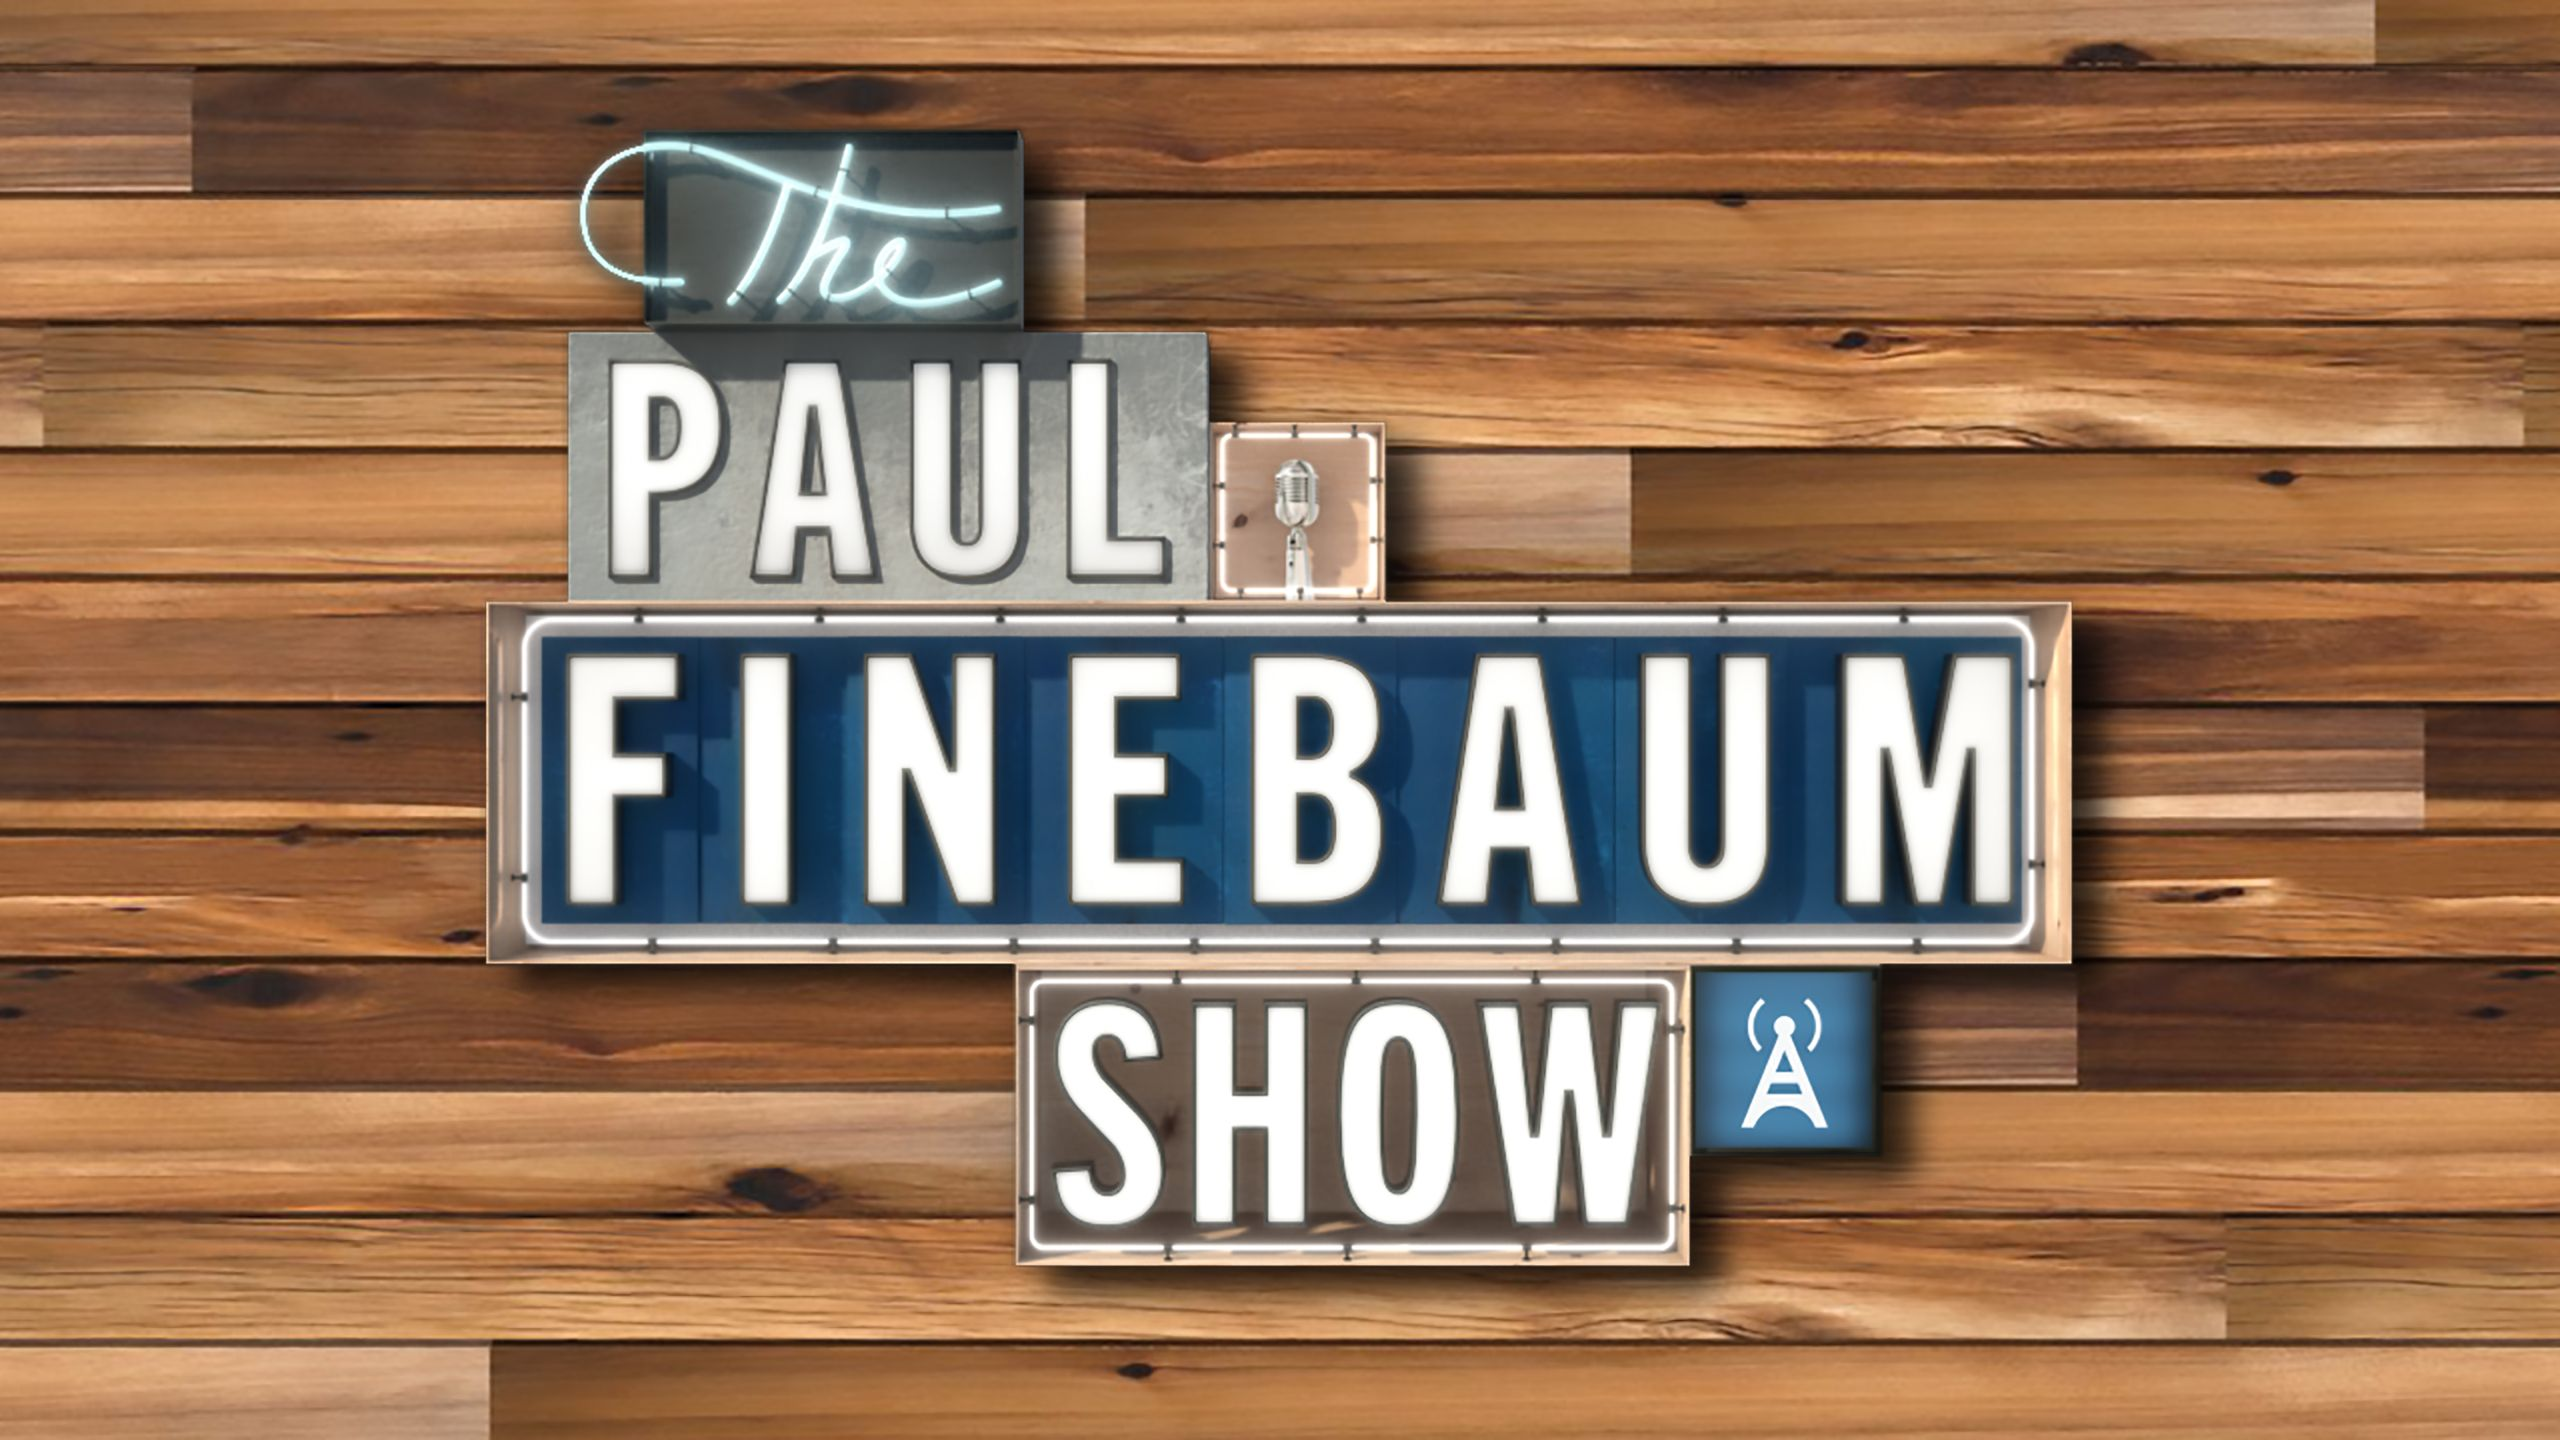 Mon, 12/11 - The Paul Finebaum Show